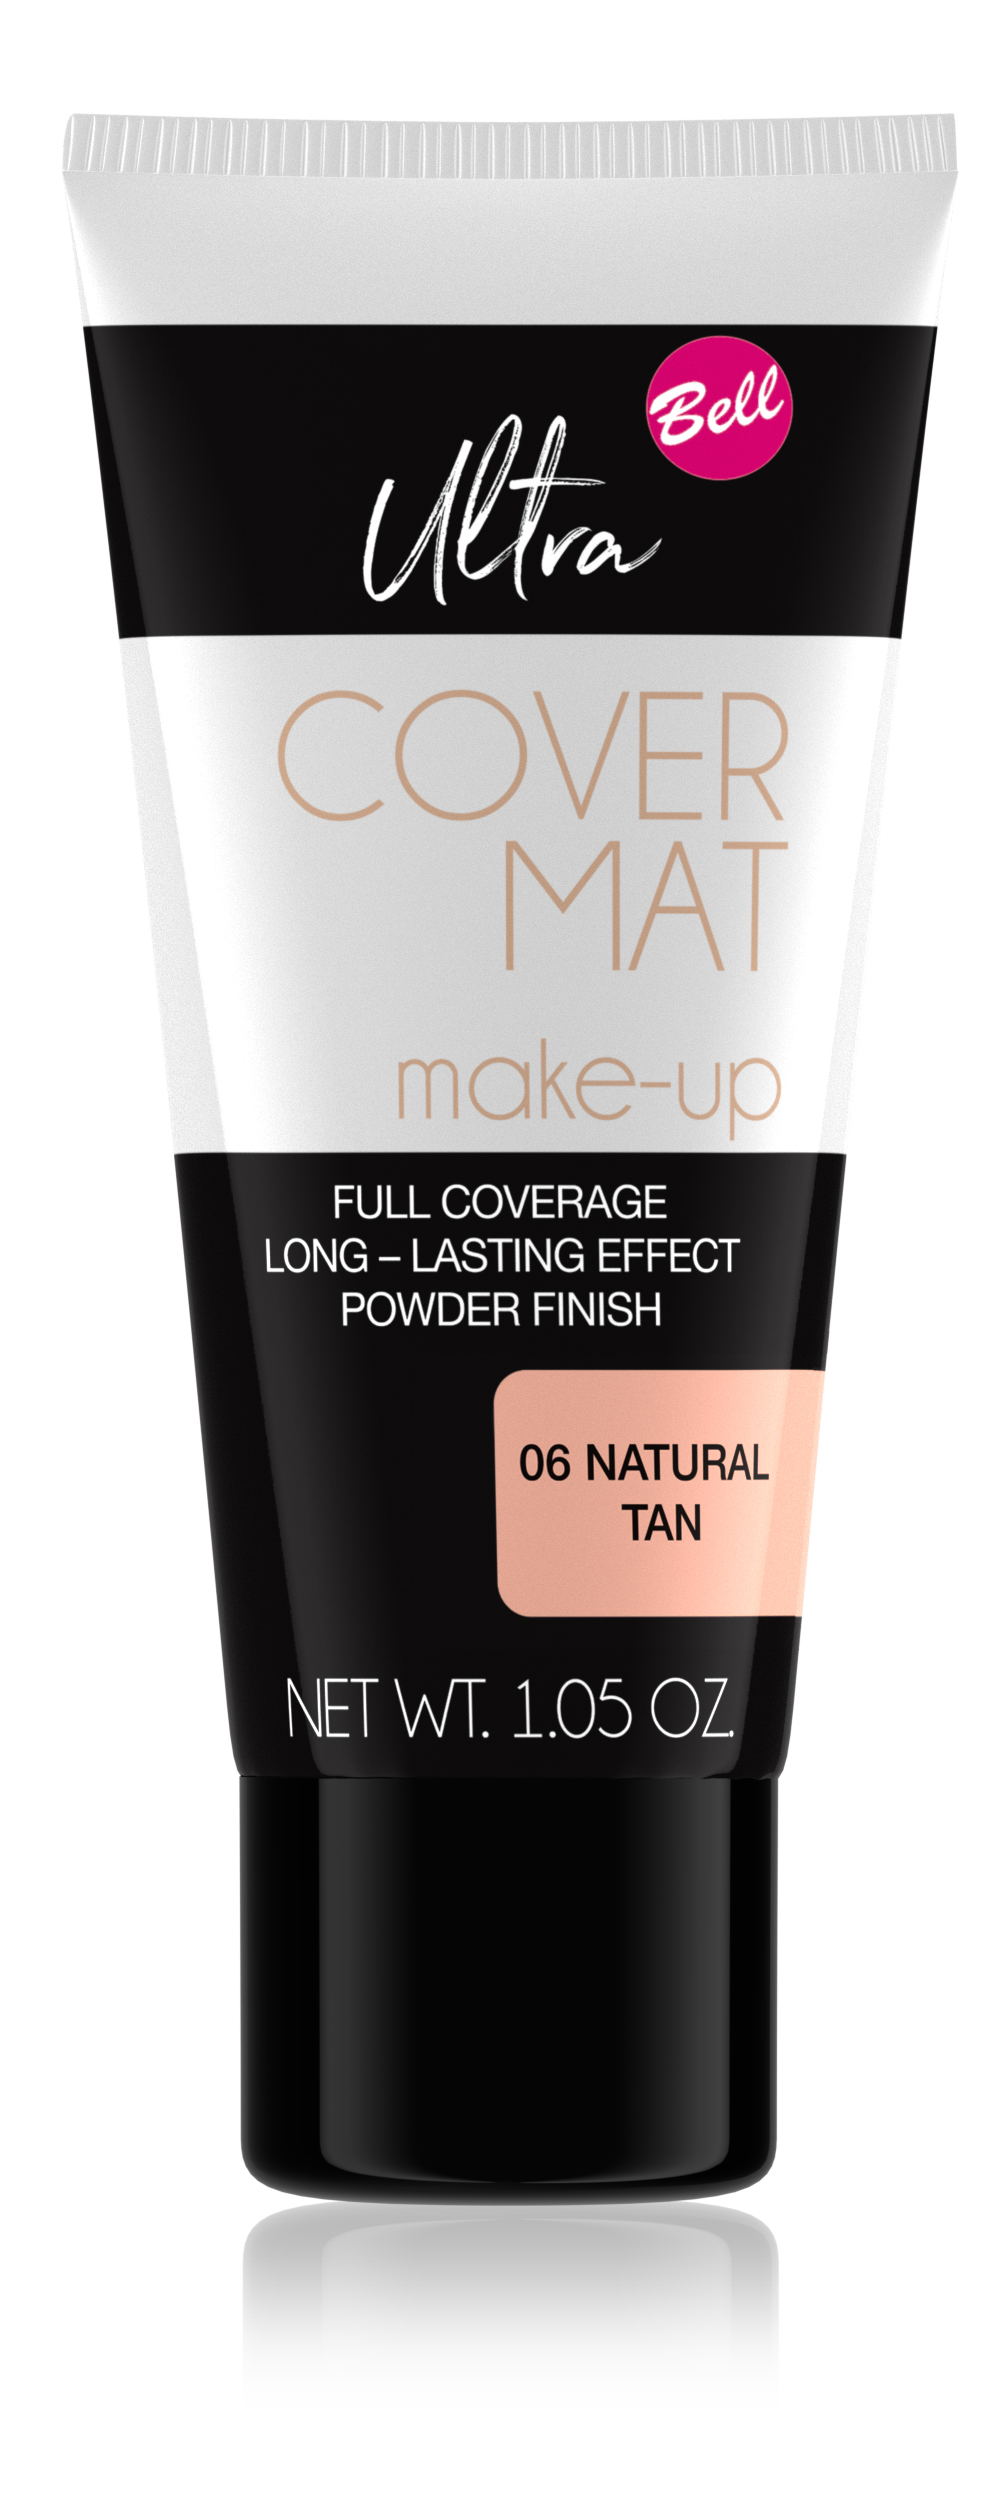 Ultra Cover Mat Make-Up